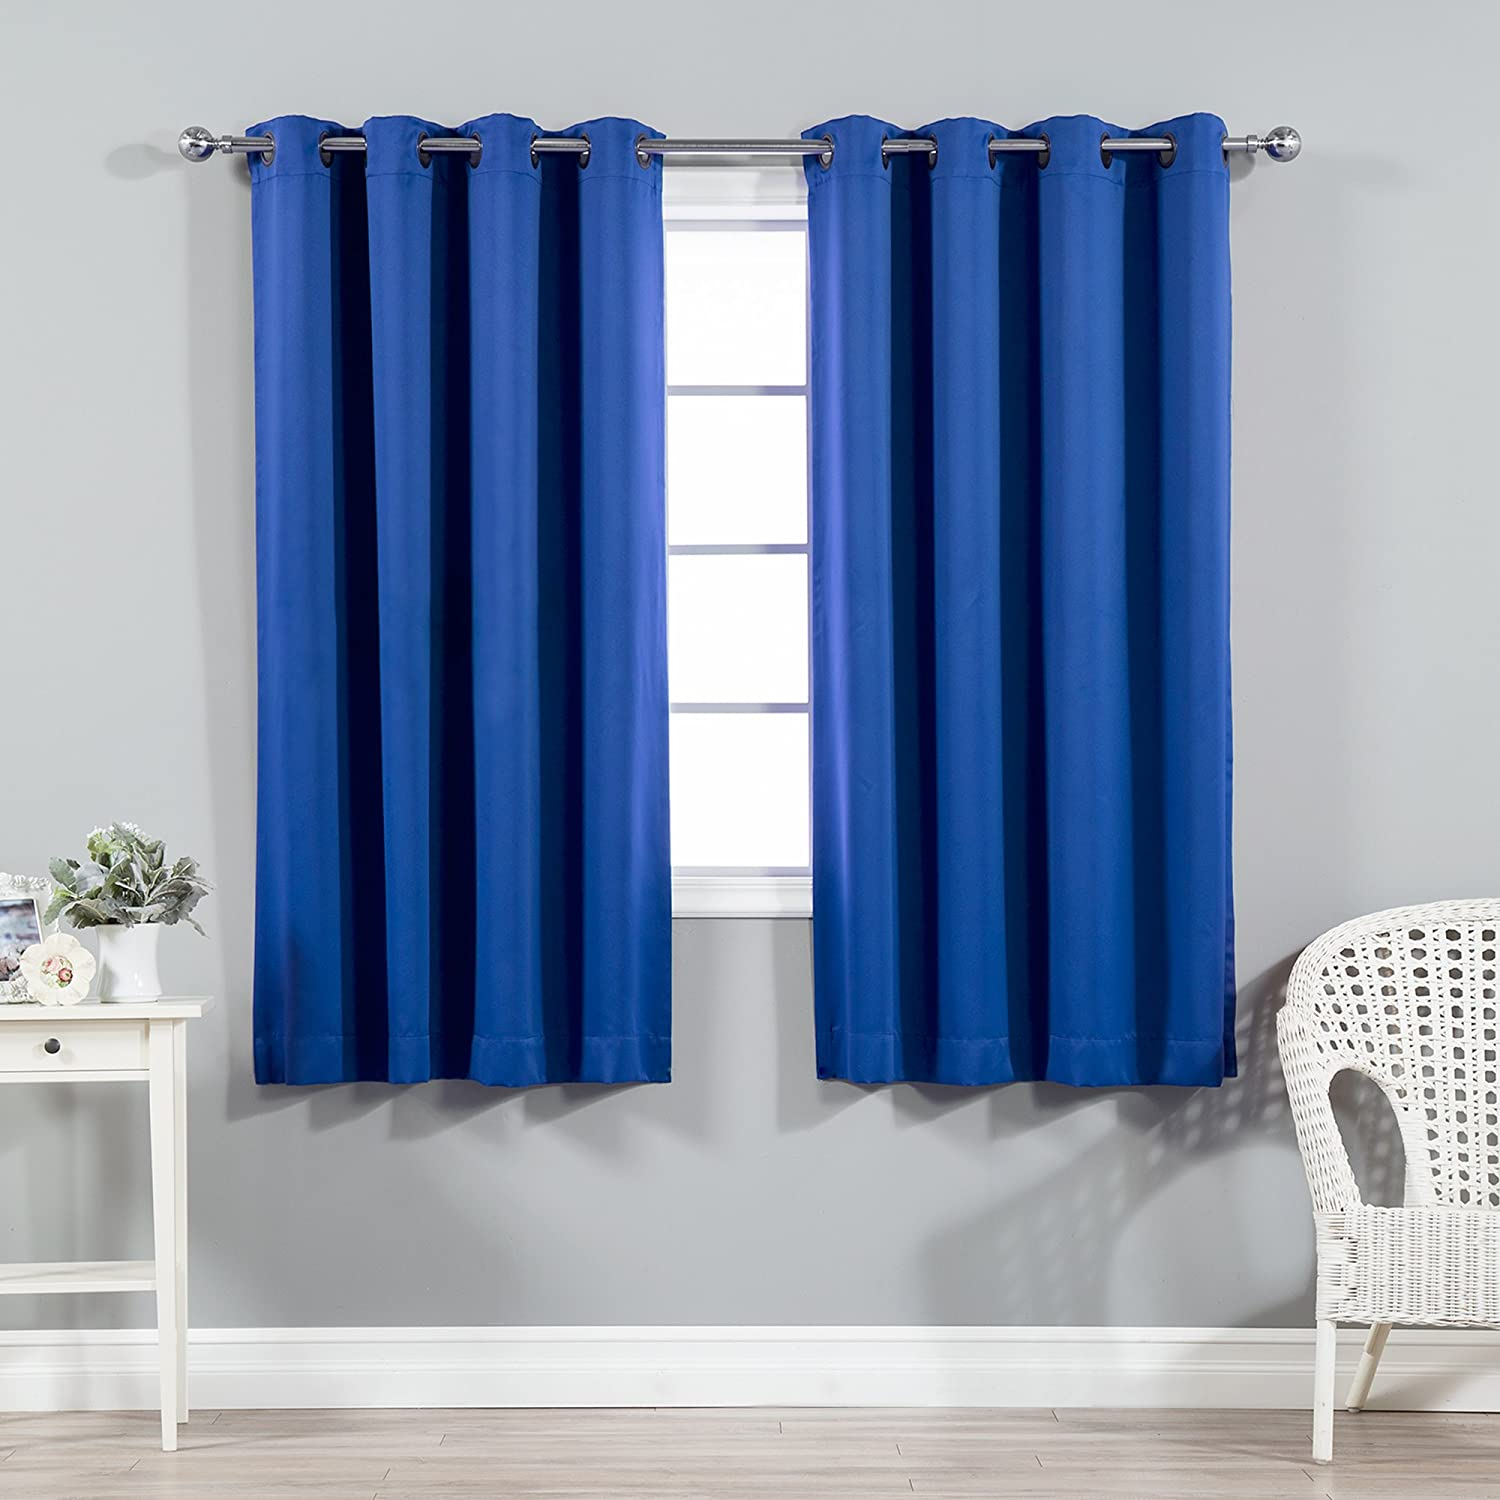 Best Home Fashion Thermal Insulated Blackout Curtains - Antique Bronze Grommet Top - Royal Blue